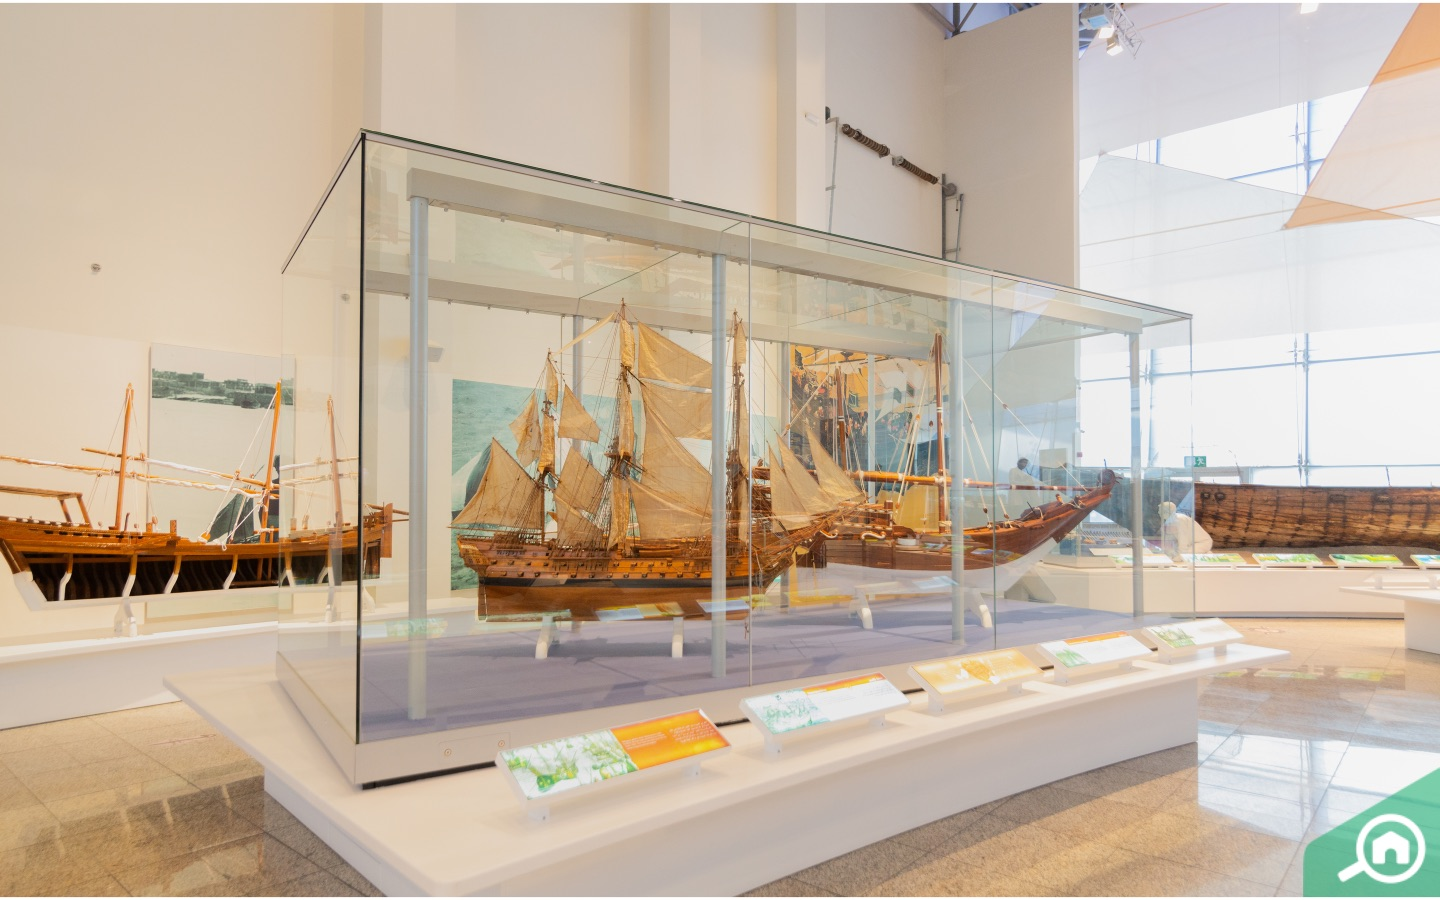 Replica of marine ships in a museum